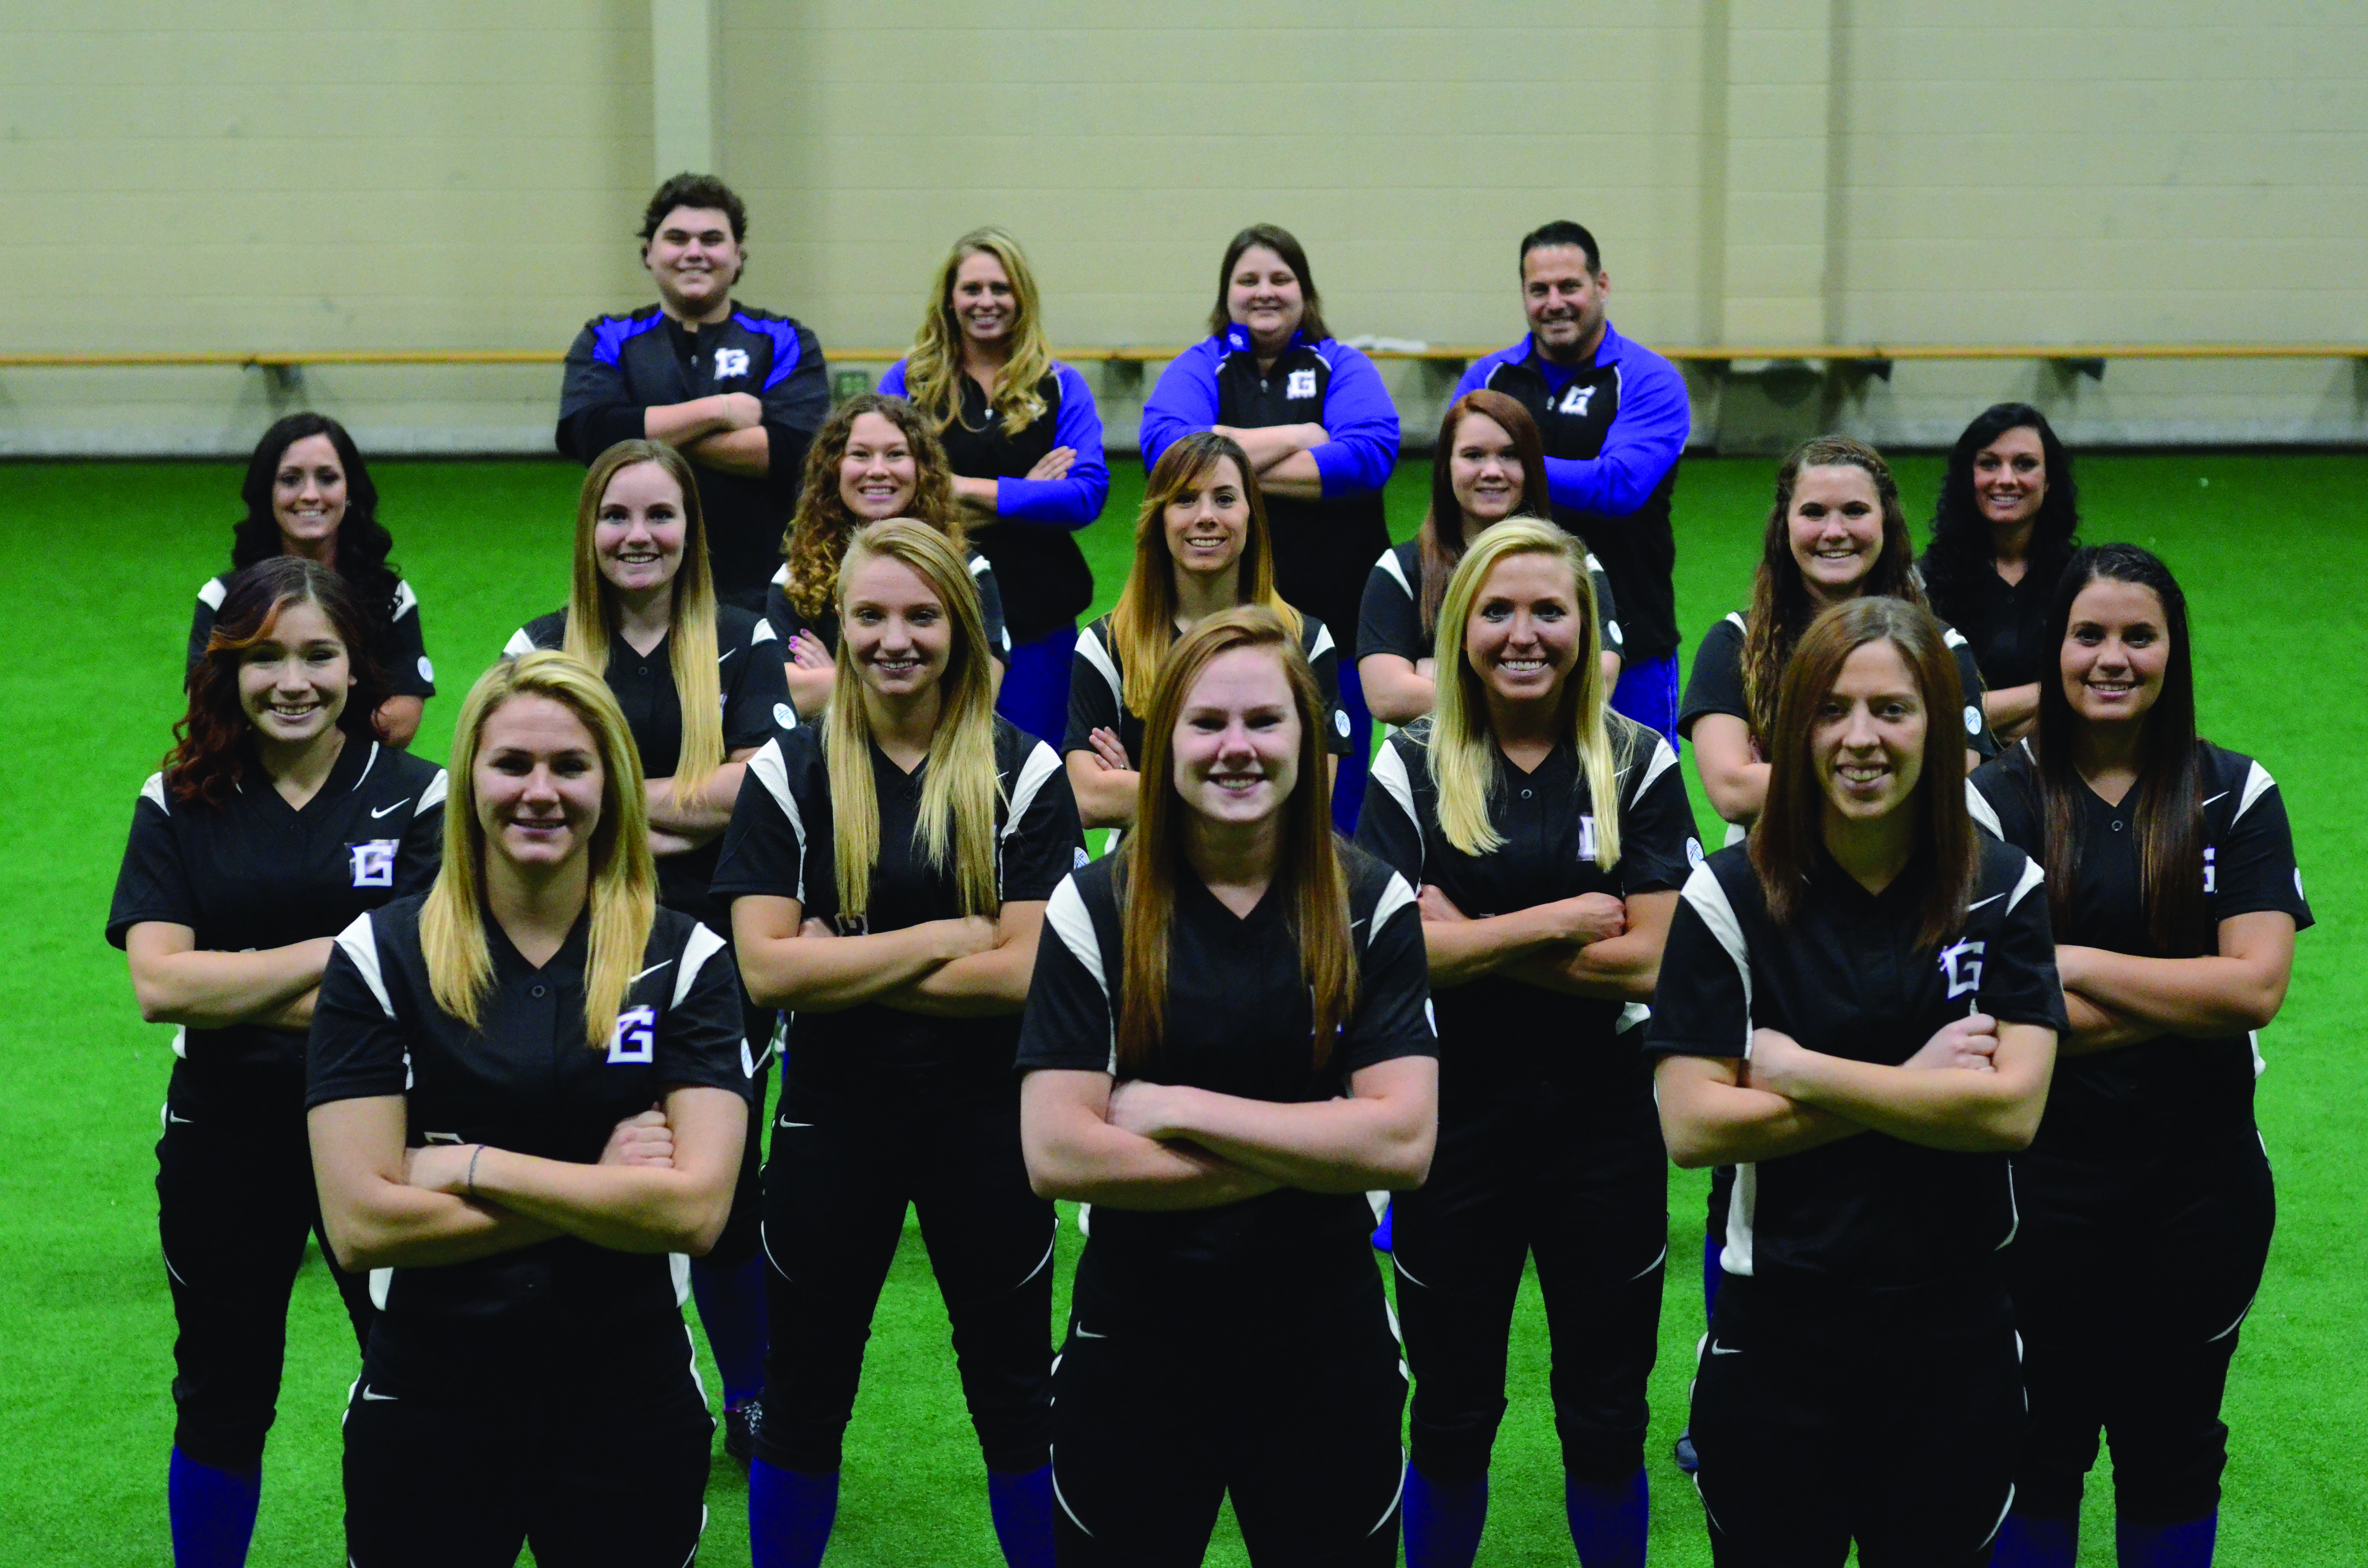 The 2014-2015 women's softball team poses for a picture